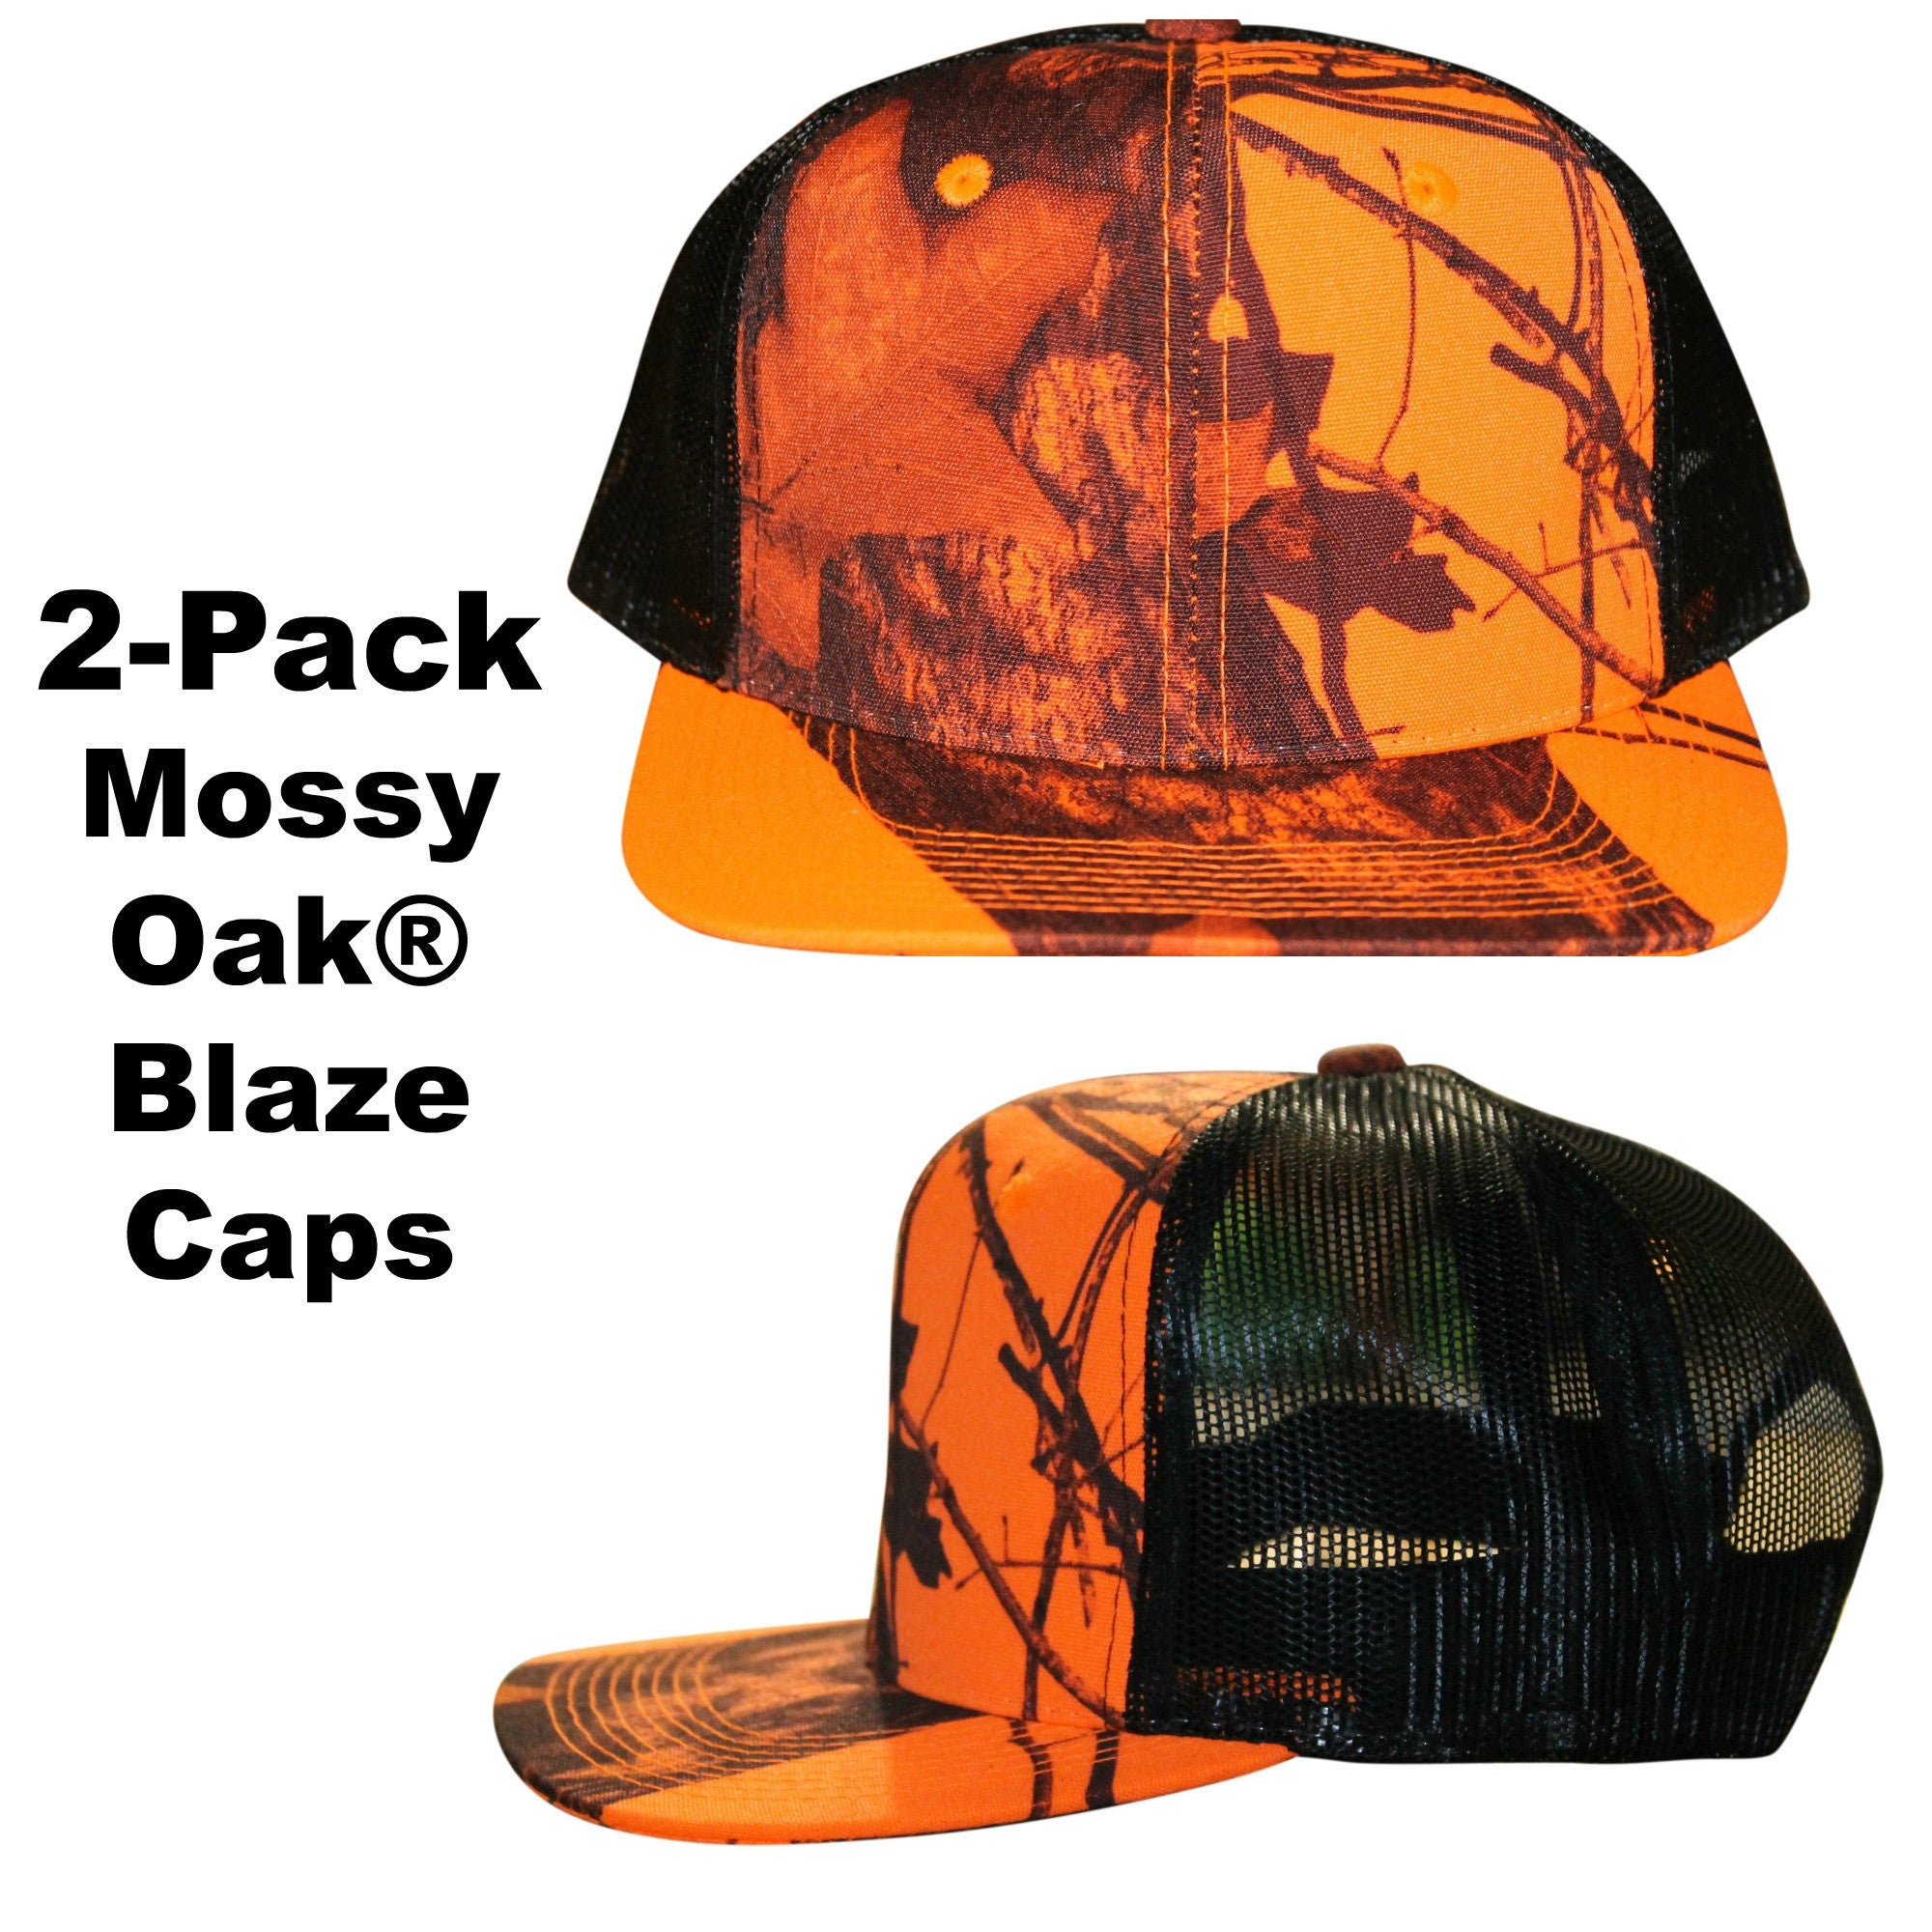 10946f4743a Mossy oak blaze caps two pack mesh snapback trucker hunters hat curved or flat  brim visor